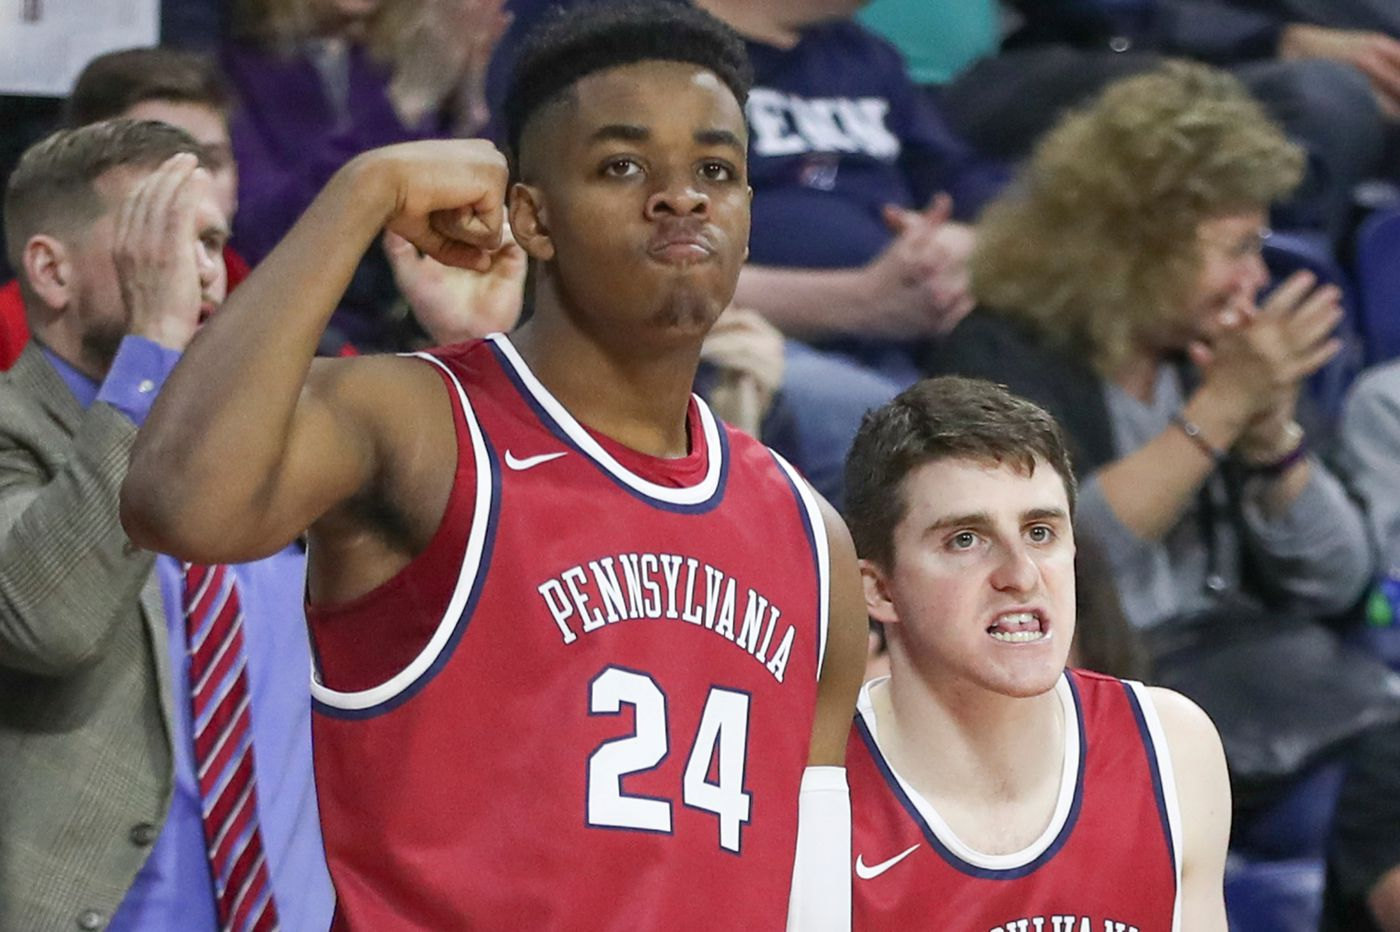 Penn might not be in the Ivy League Tournament without Jarrod Simmons